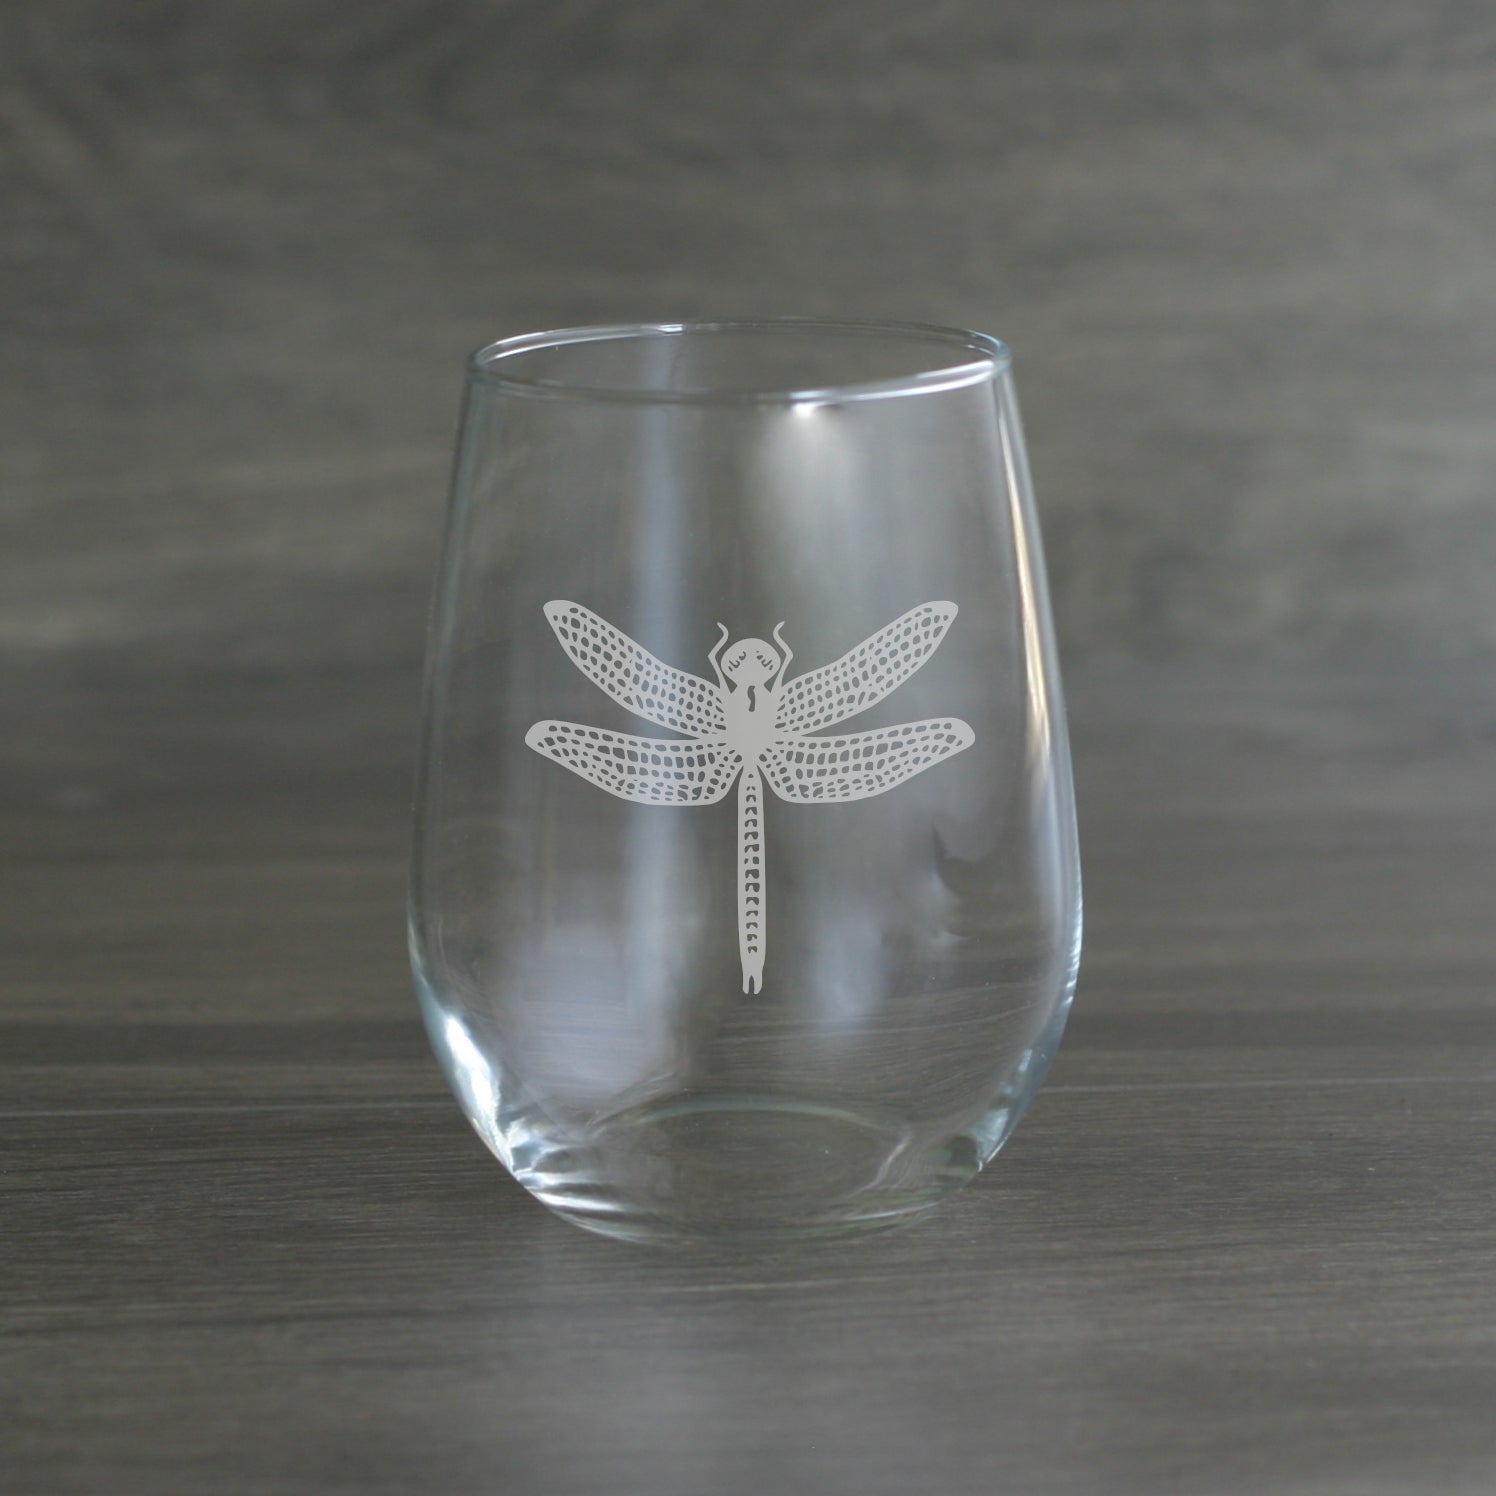 Dragonfly engraved stemless wine glass